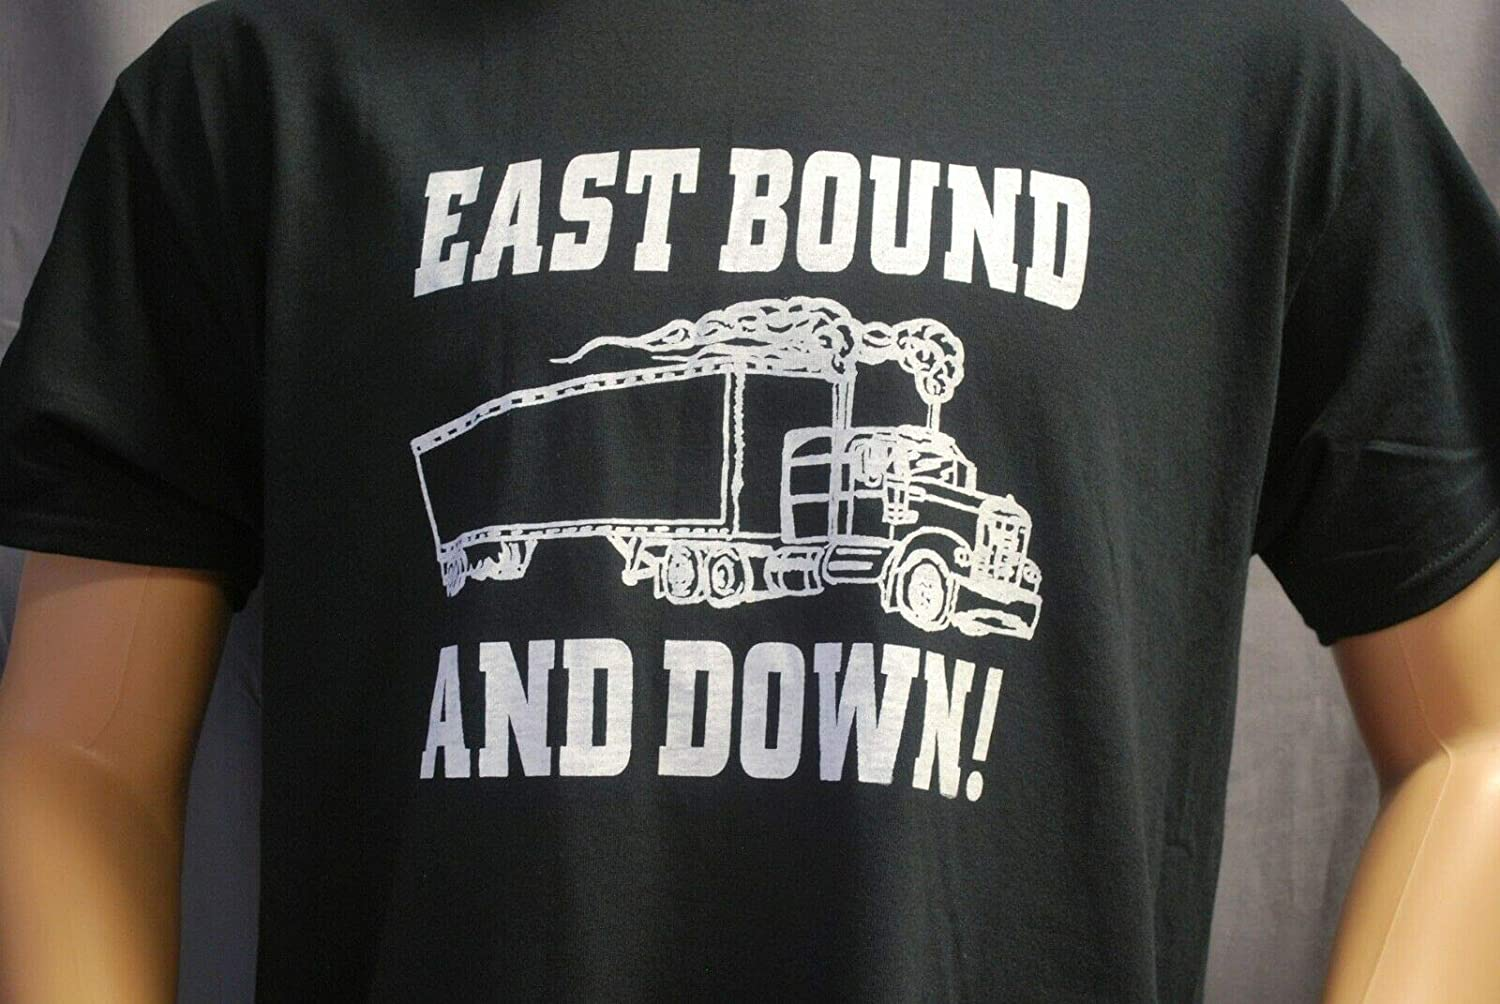 EAST BOUND AND DOWN T-SHIRT SIZE MEDIUM TEE RACE CITY RETRO SMOKEY BANDIT TRANS AM BAN ONE TRUCKER BEER CARGO MOVIE BURT REYNOLDS JERRY REED MR BIG KENWORTH MACK PETERBILT TRACTOR TRAILER GIFT